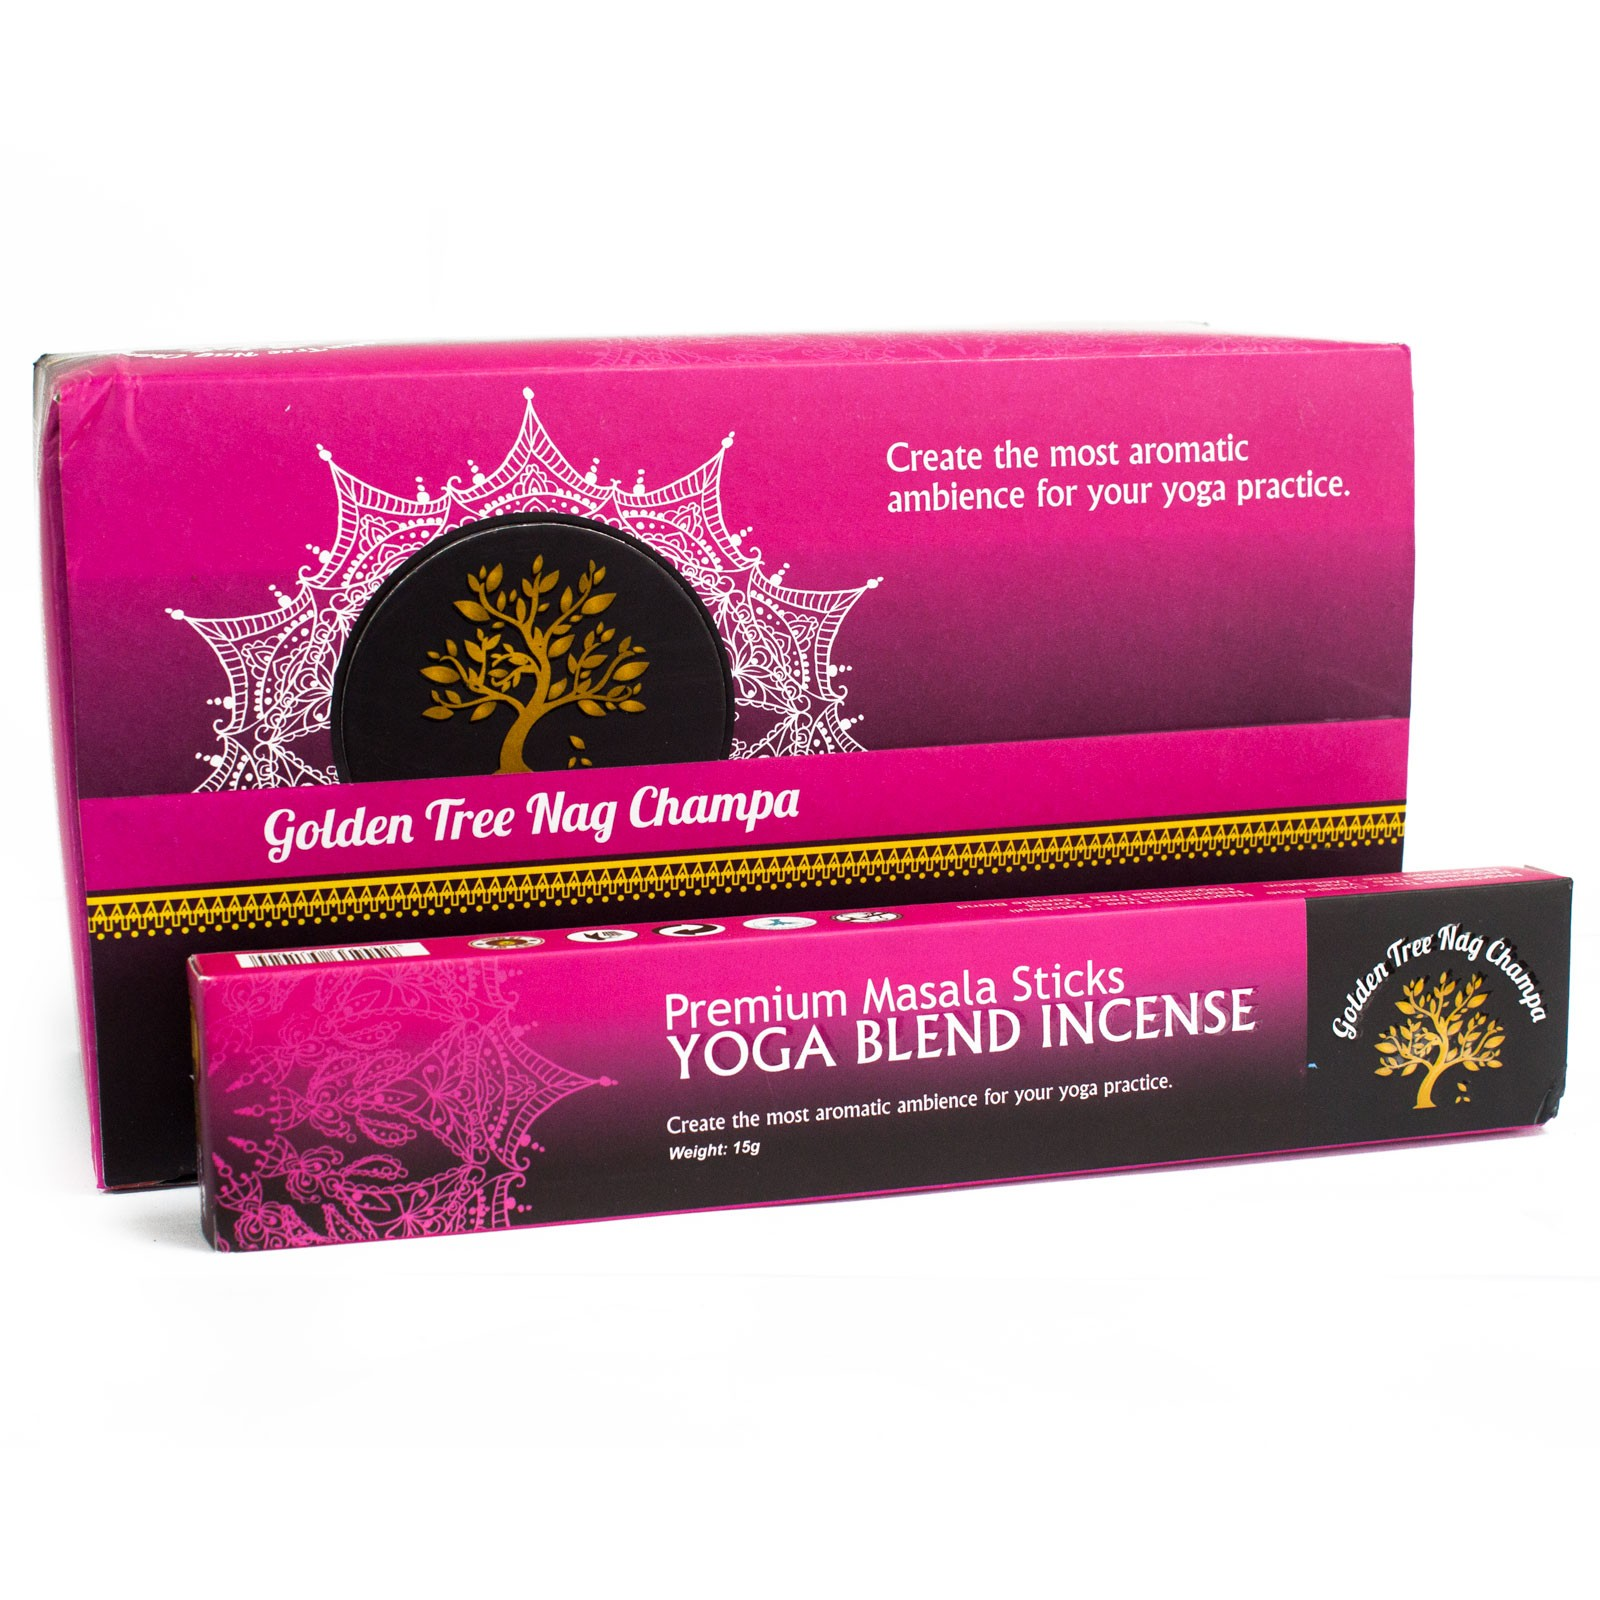 Golden Tree Nag Champa Incense - Yoga Blend